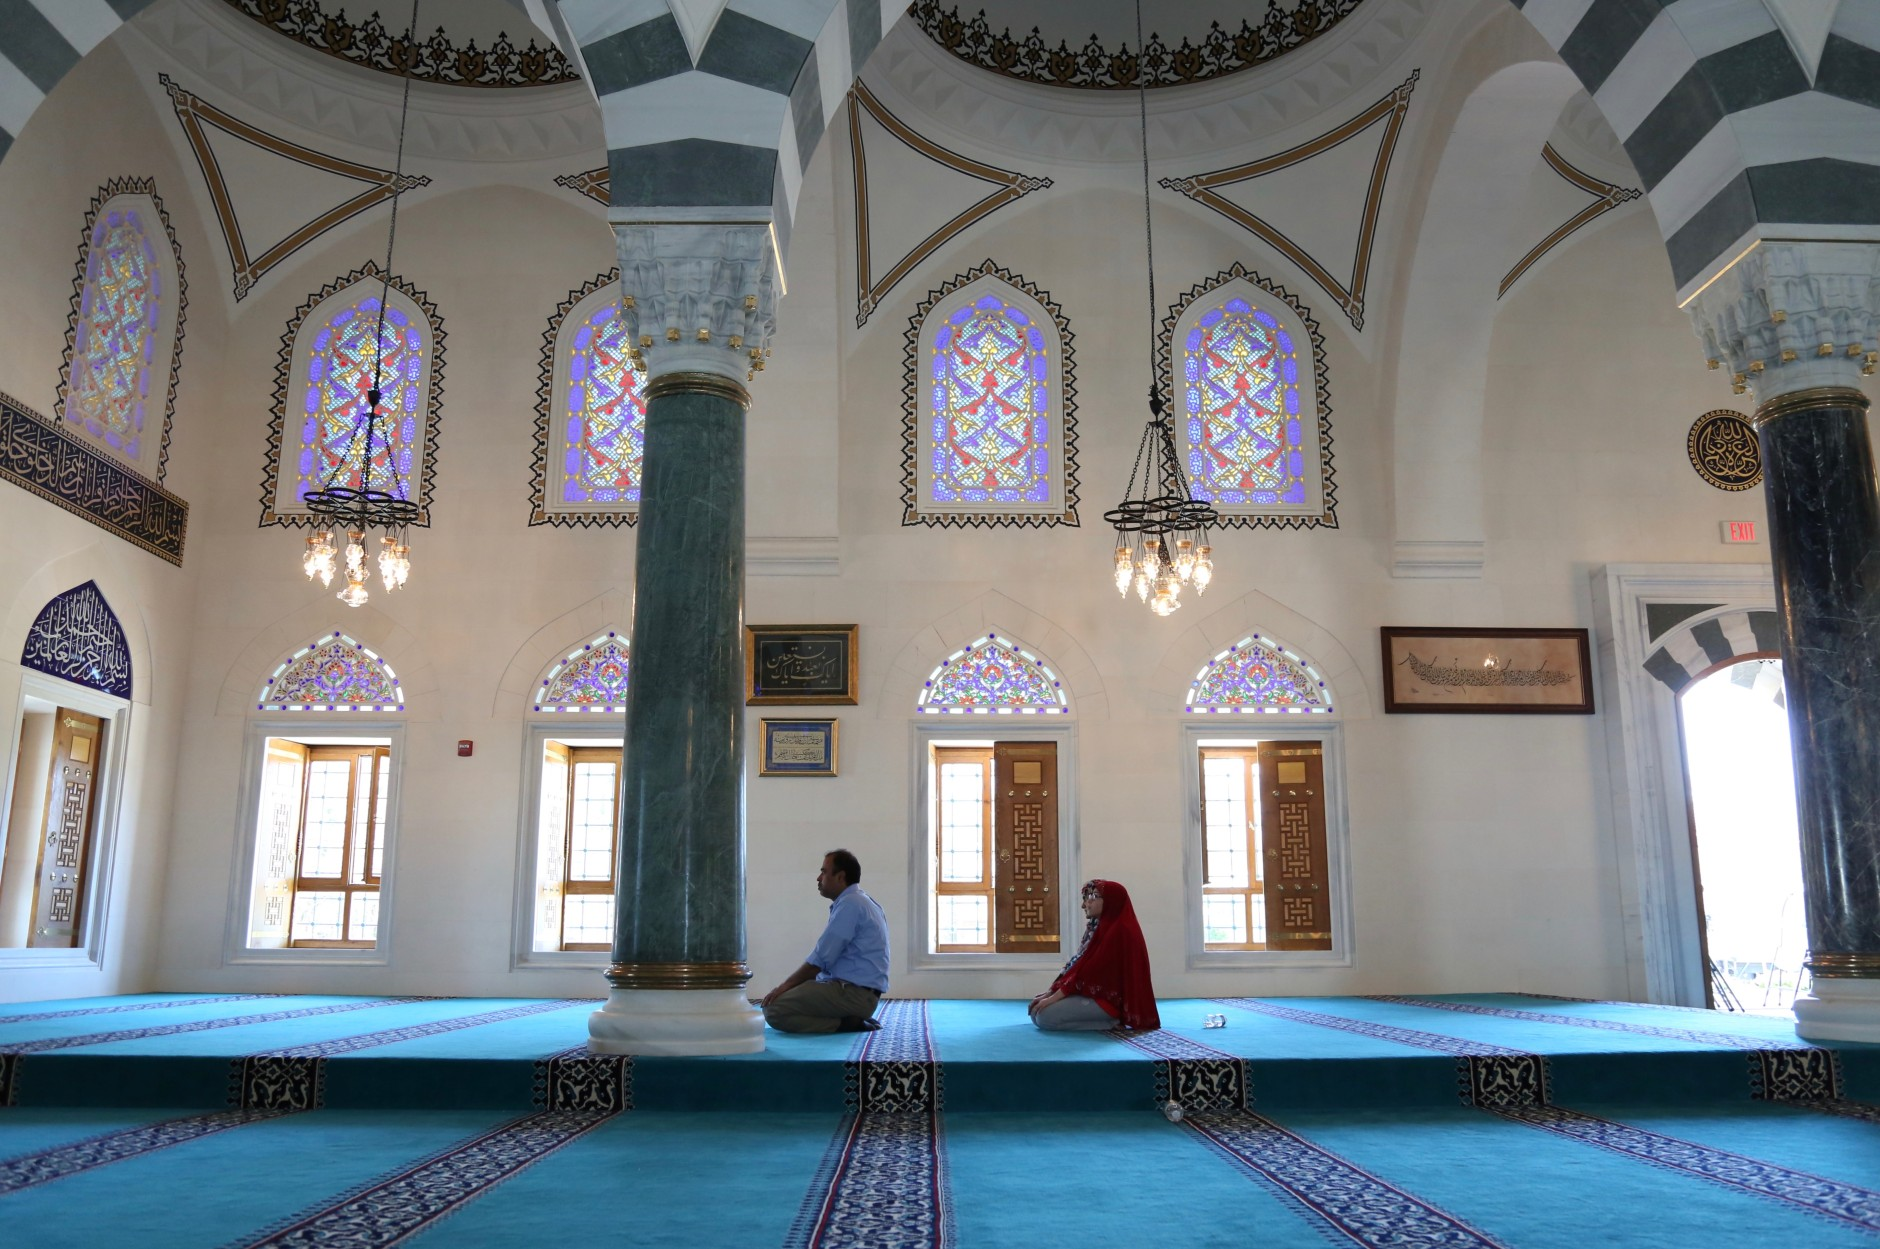 Arriving late to the Friday prayer, Kamran Shaikh and his wife Sofia and daughter Isra follow him in prayer at the Diyanet Center of America on Friday, ...